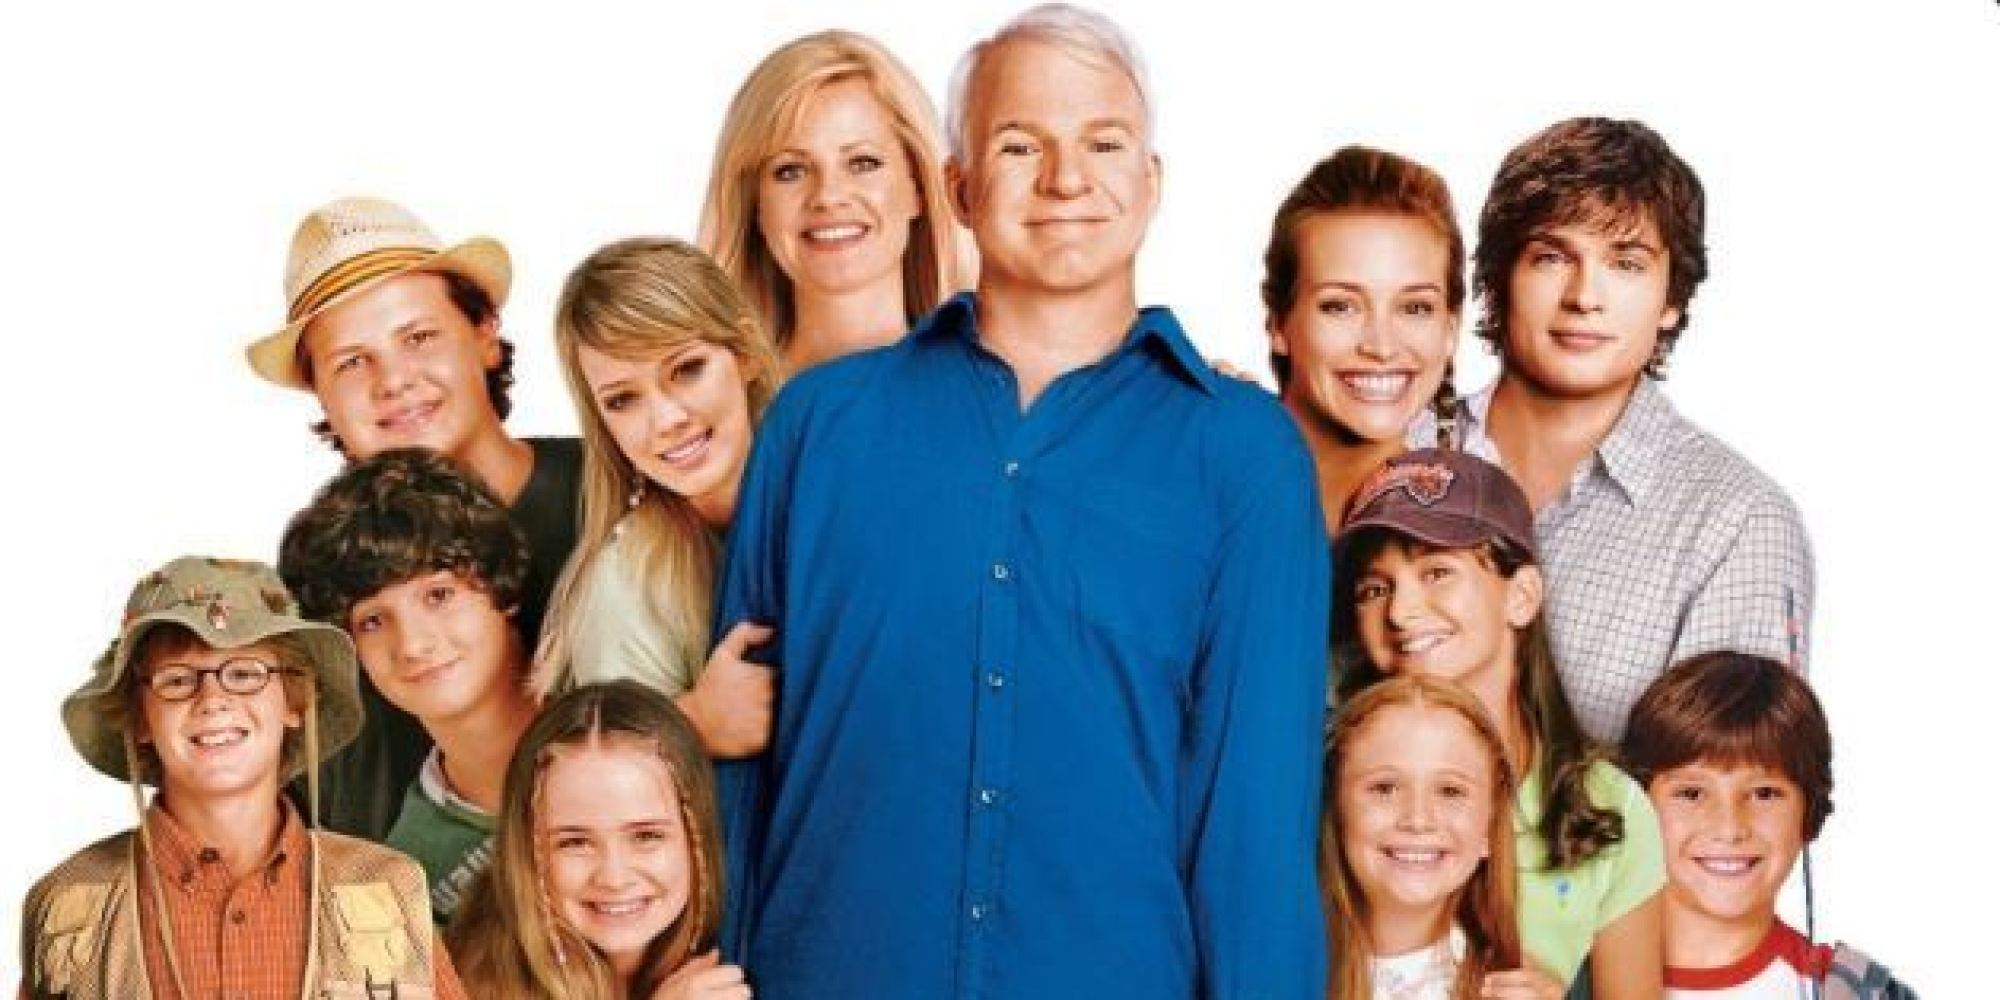 cheaper by the dozen character analysis Cheaper by the dozen, free study guides and book notes including comprehensive chapter analysis, complete summary analysis, author biography information, character profiles, theme analysis, metaphor analysis, and top ten quotes on classic literature.